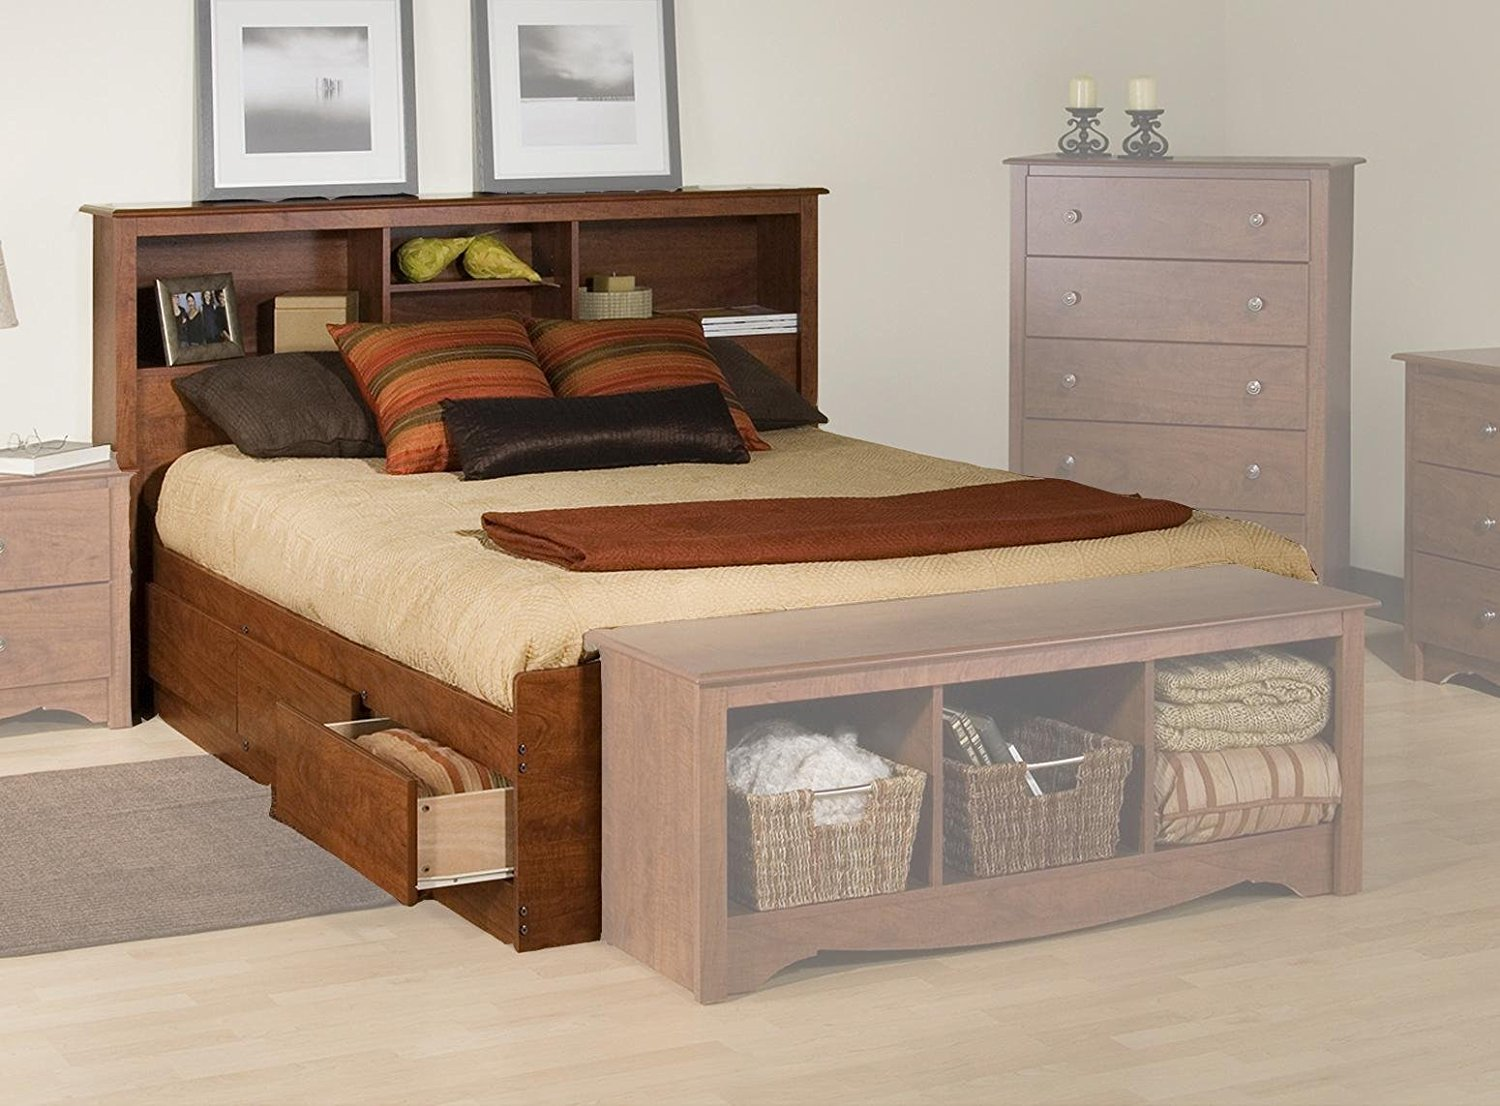 Beds With Storage Drawers Idea Royals